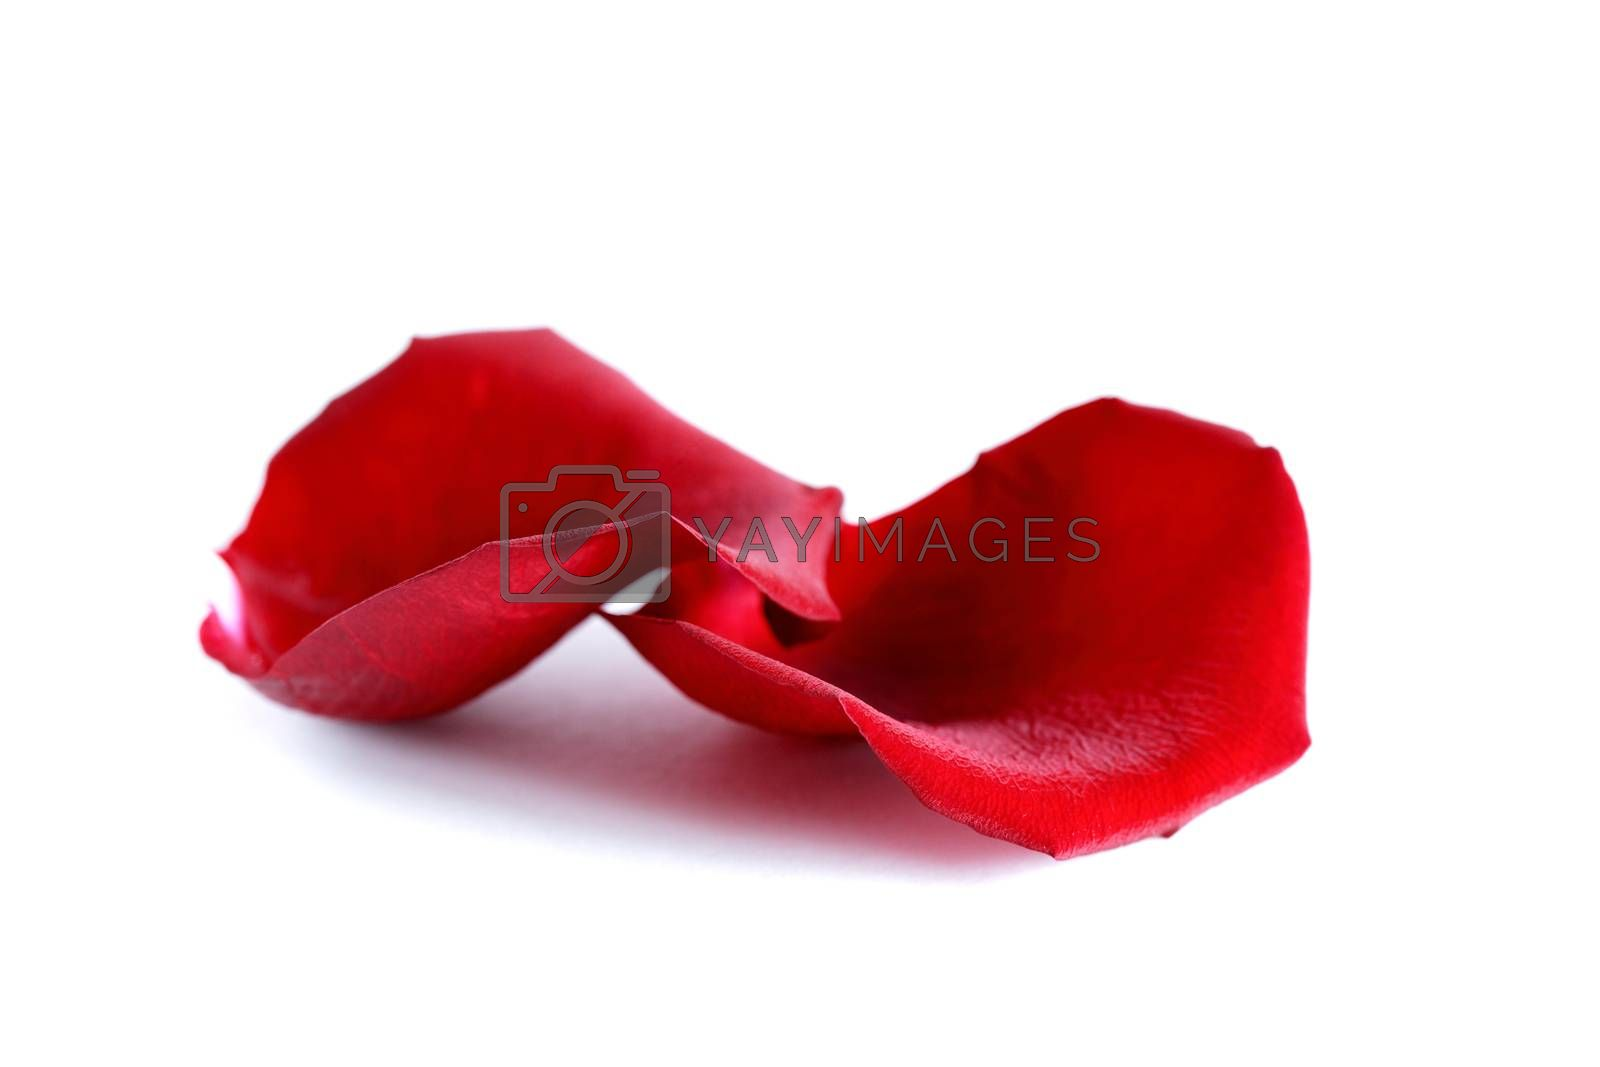 Romance concept. Pair of red rose petals on white background